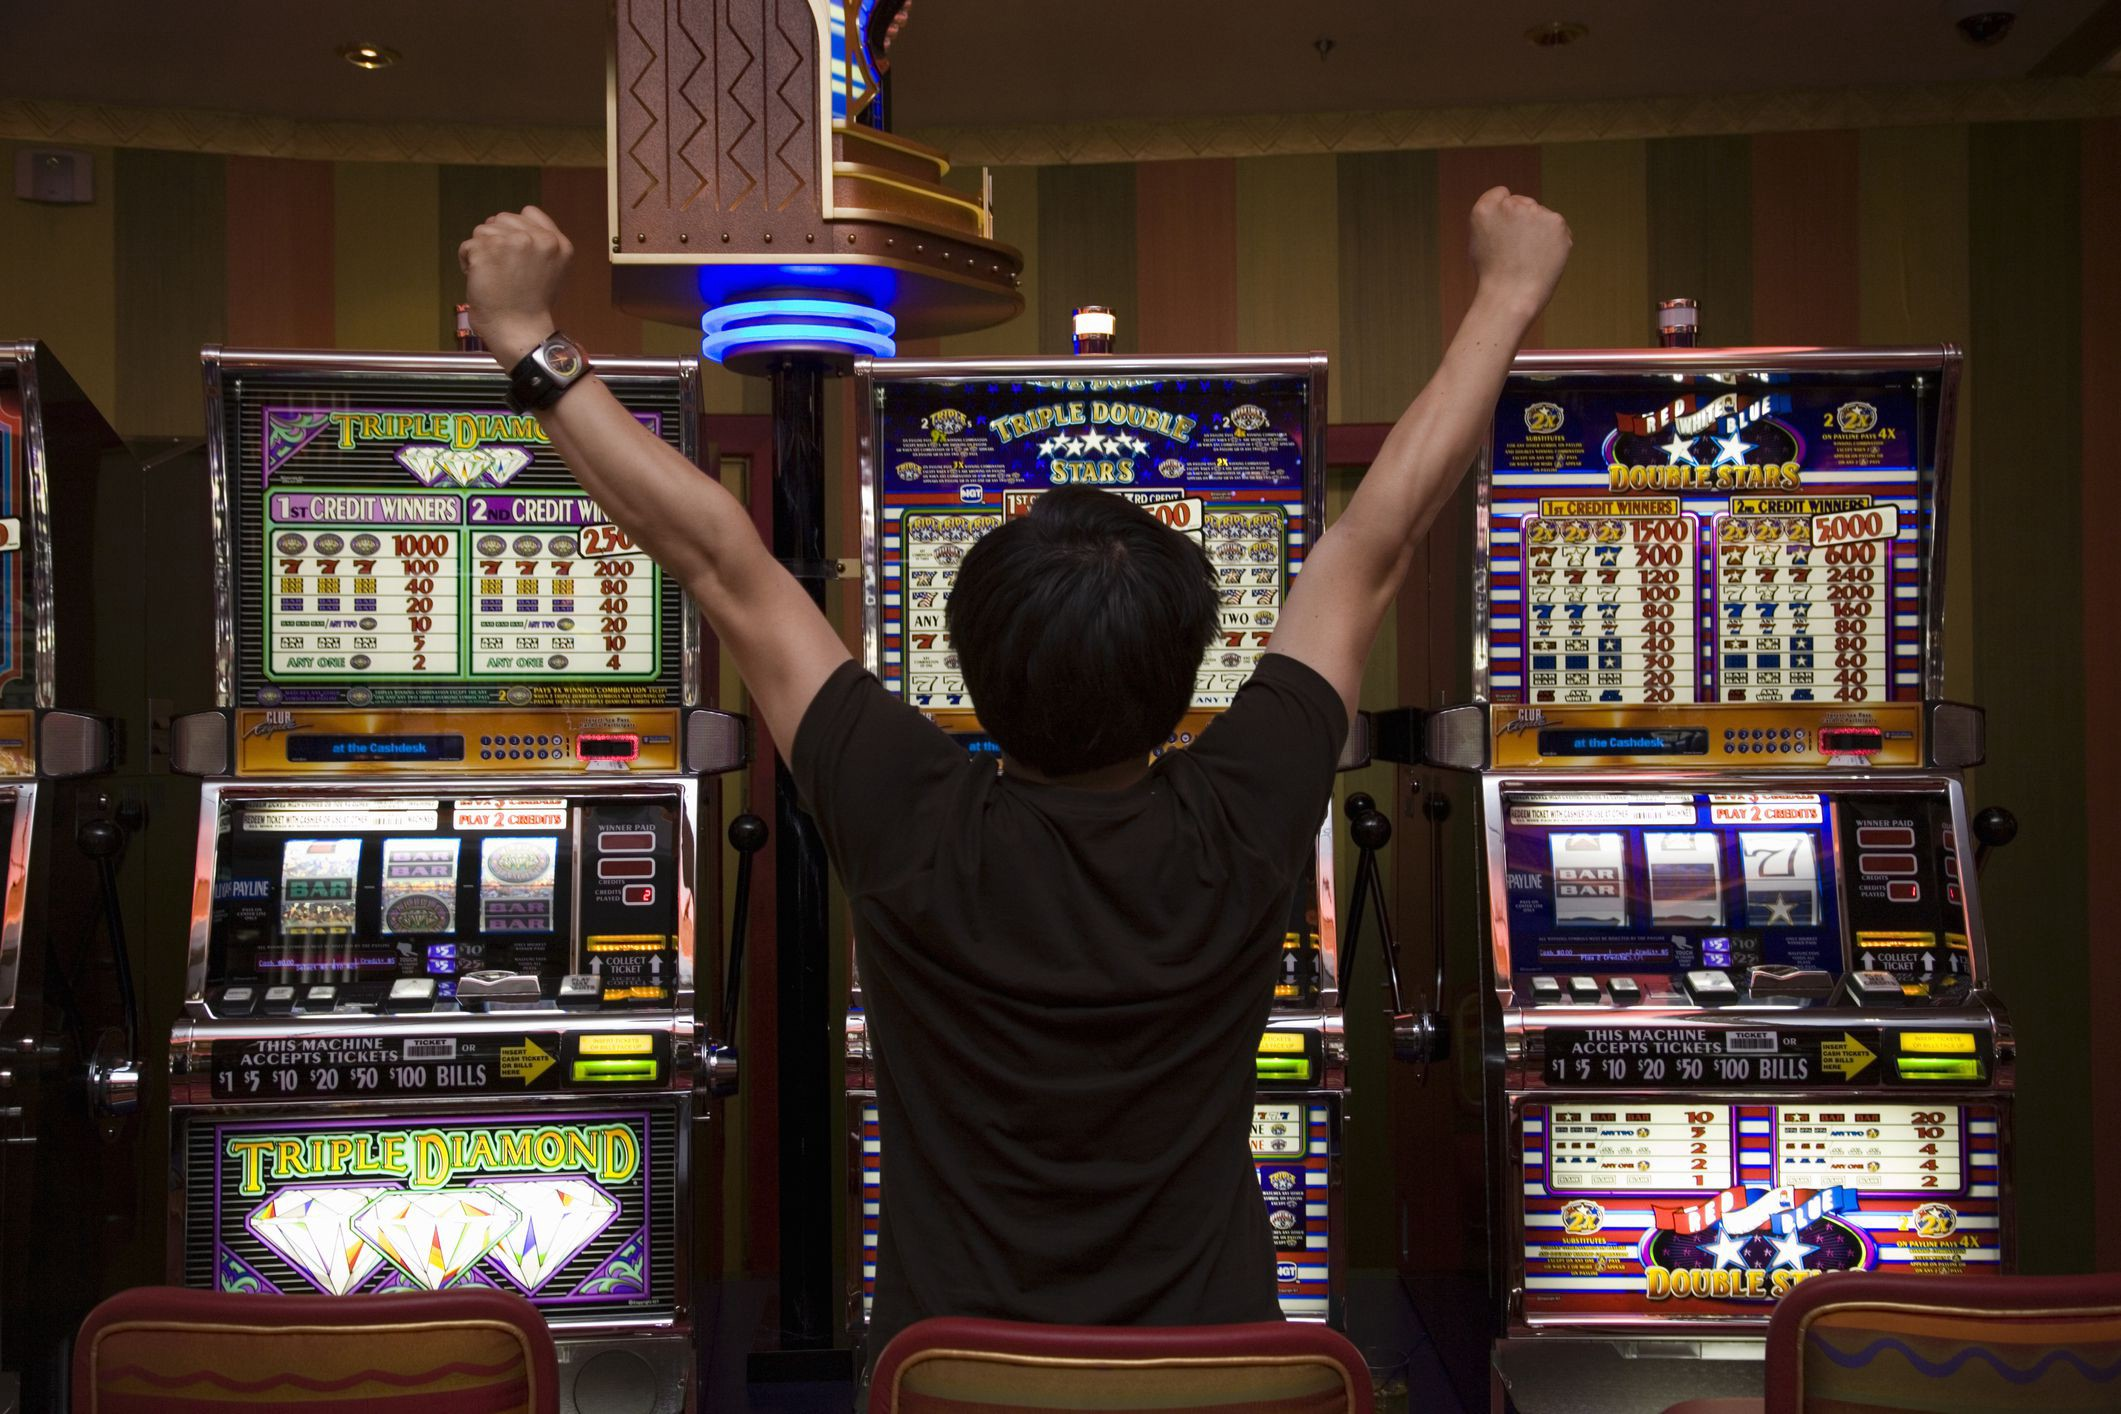 How To Win At Slot Machines In Casinos